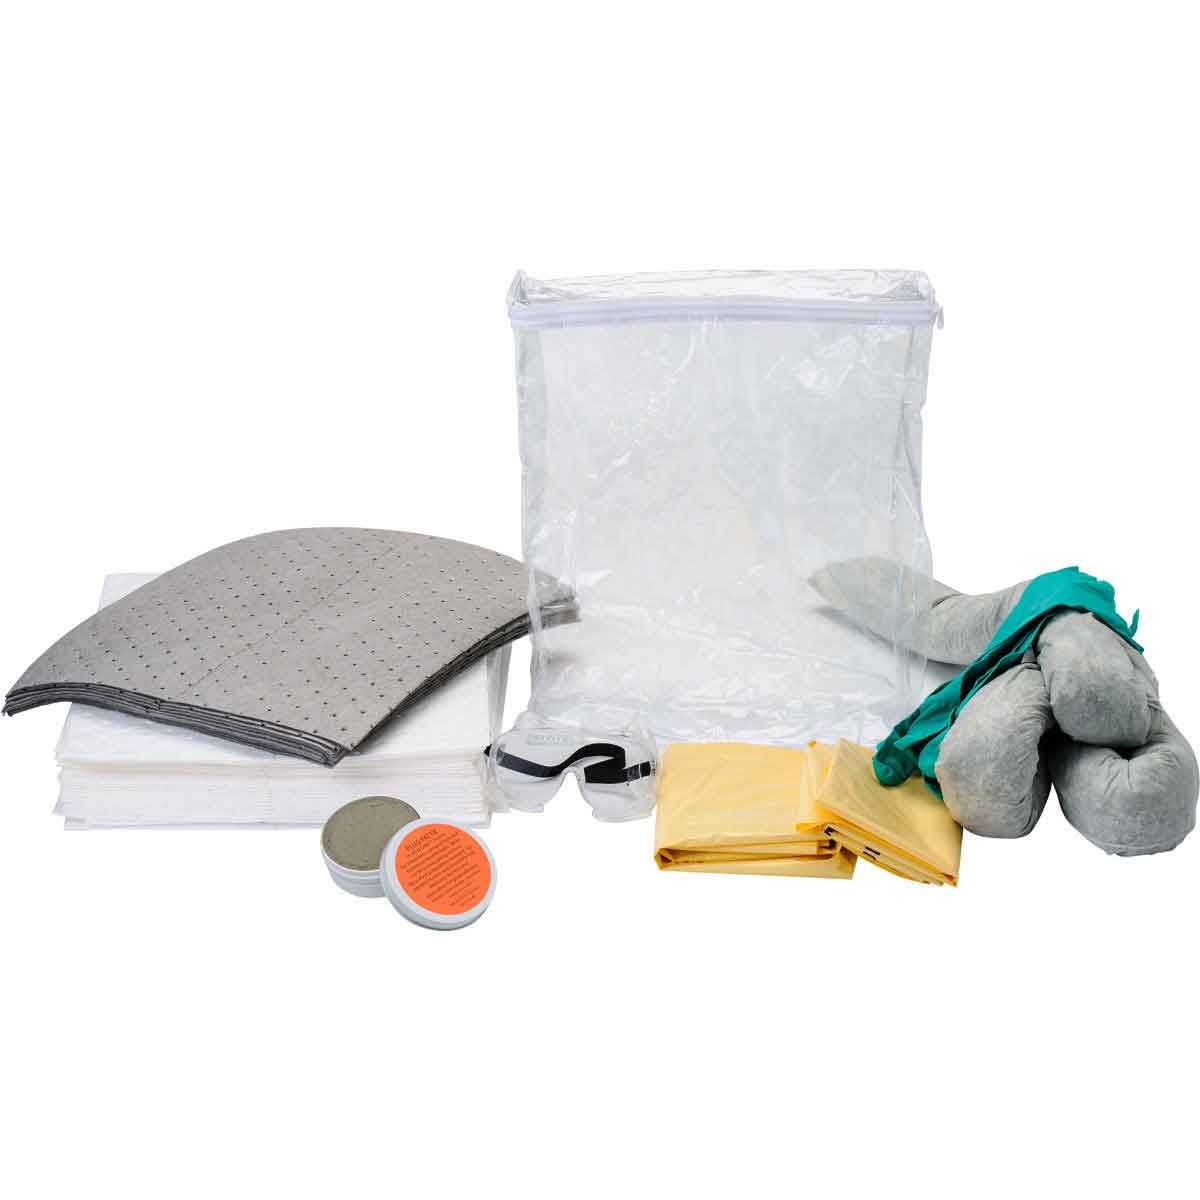 SPC® BSCSK-CB Vehicle Spill Kit, 7.75 gal Bag, Fluids Absorbed: Universal